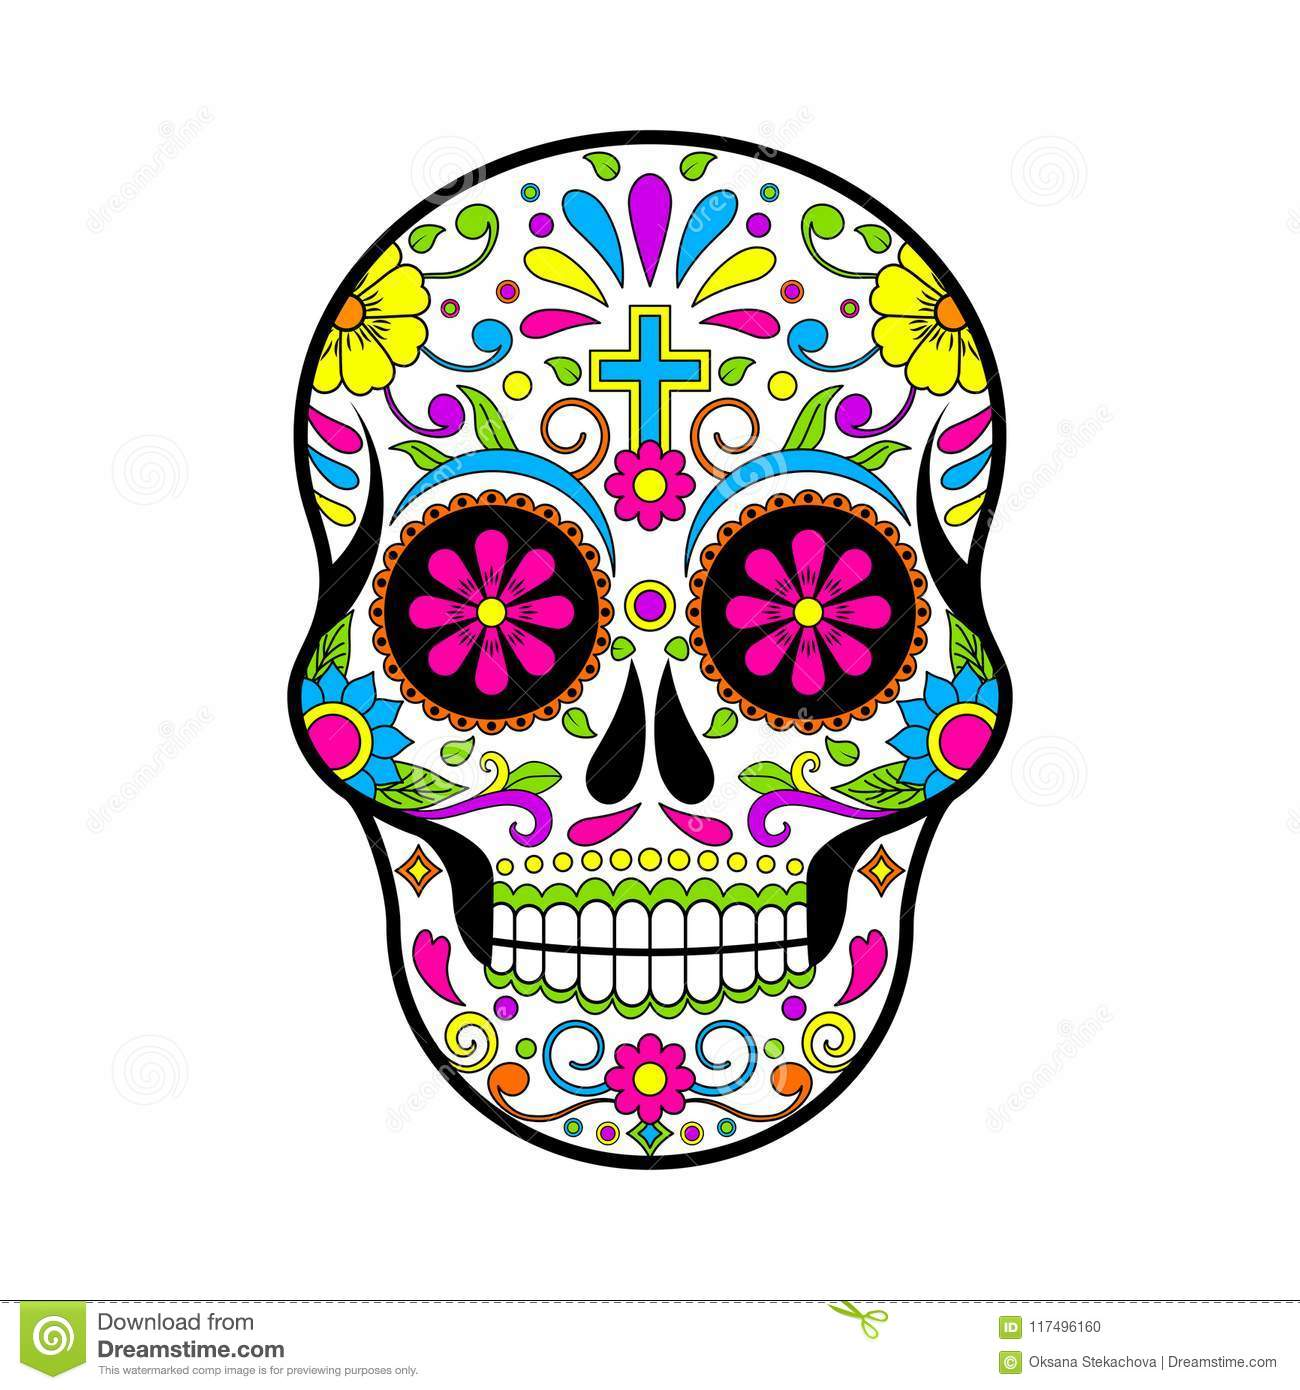 Mexican Sugar Skulls Day Of The Dead Illustration On White